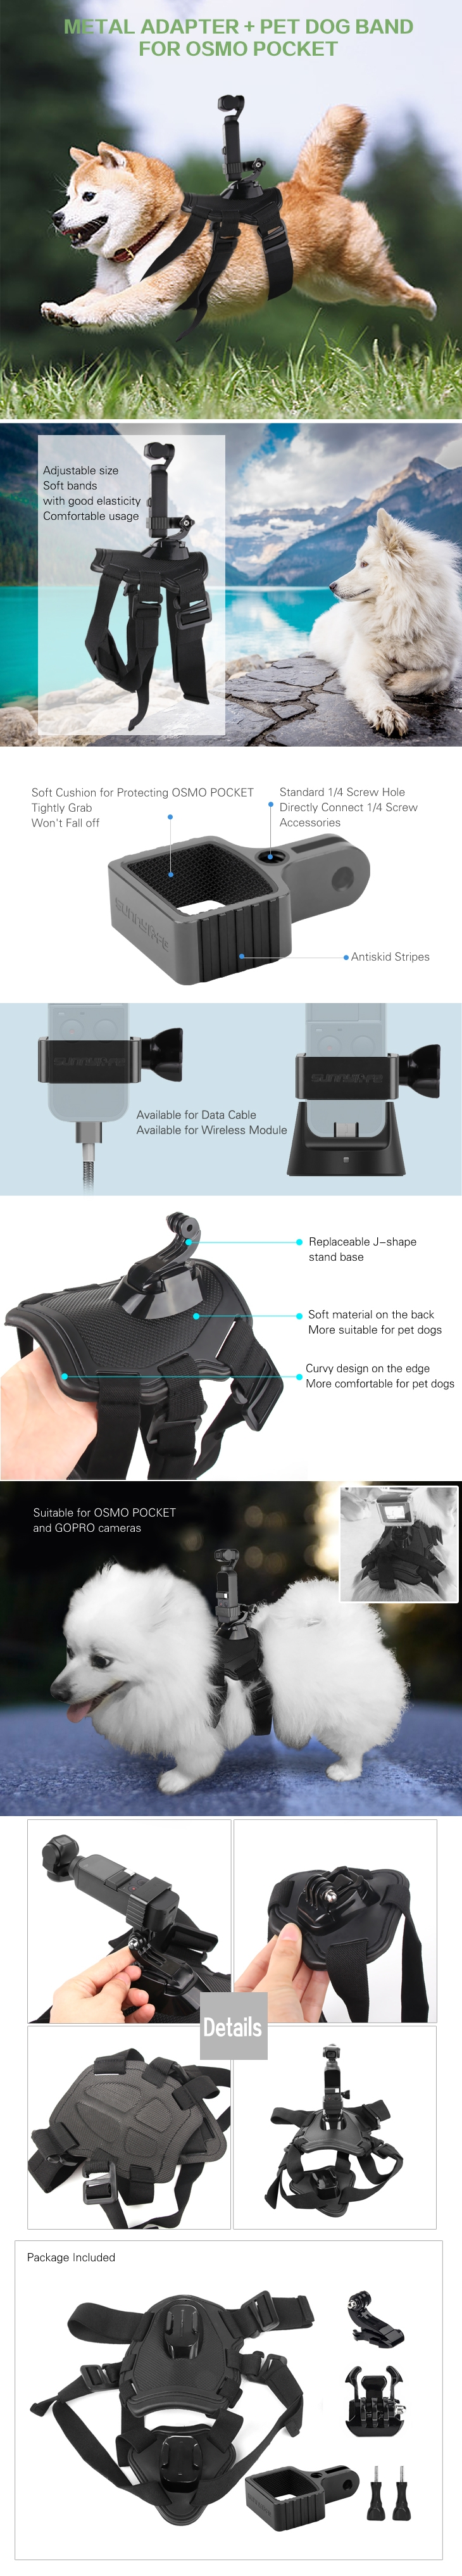 Sunnylife OSMO Pocket Gimbal Expansion Bracket with Pet Dog Harness Mount Fixed Adatper Holder Adjustable Elastic Strap Accessories for DJI GoPro Camera